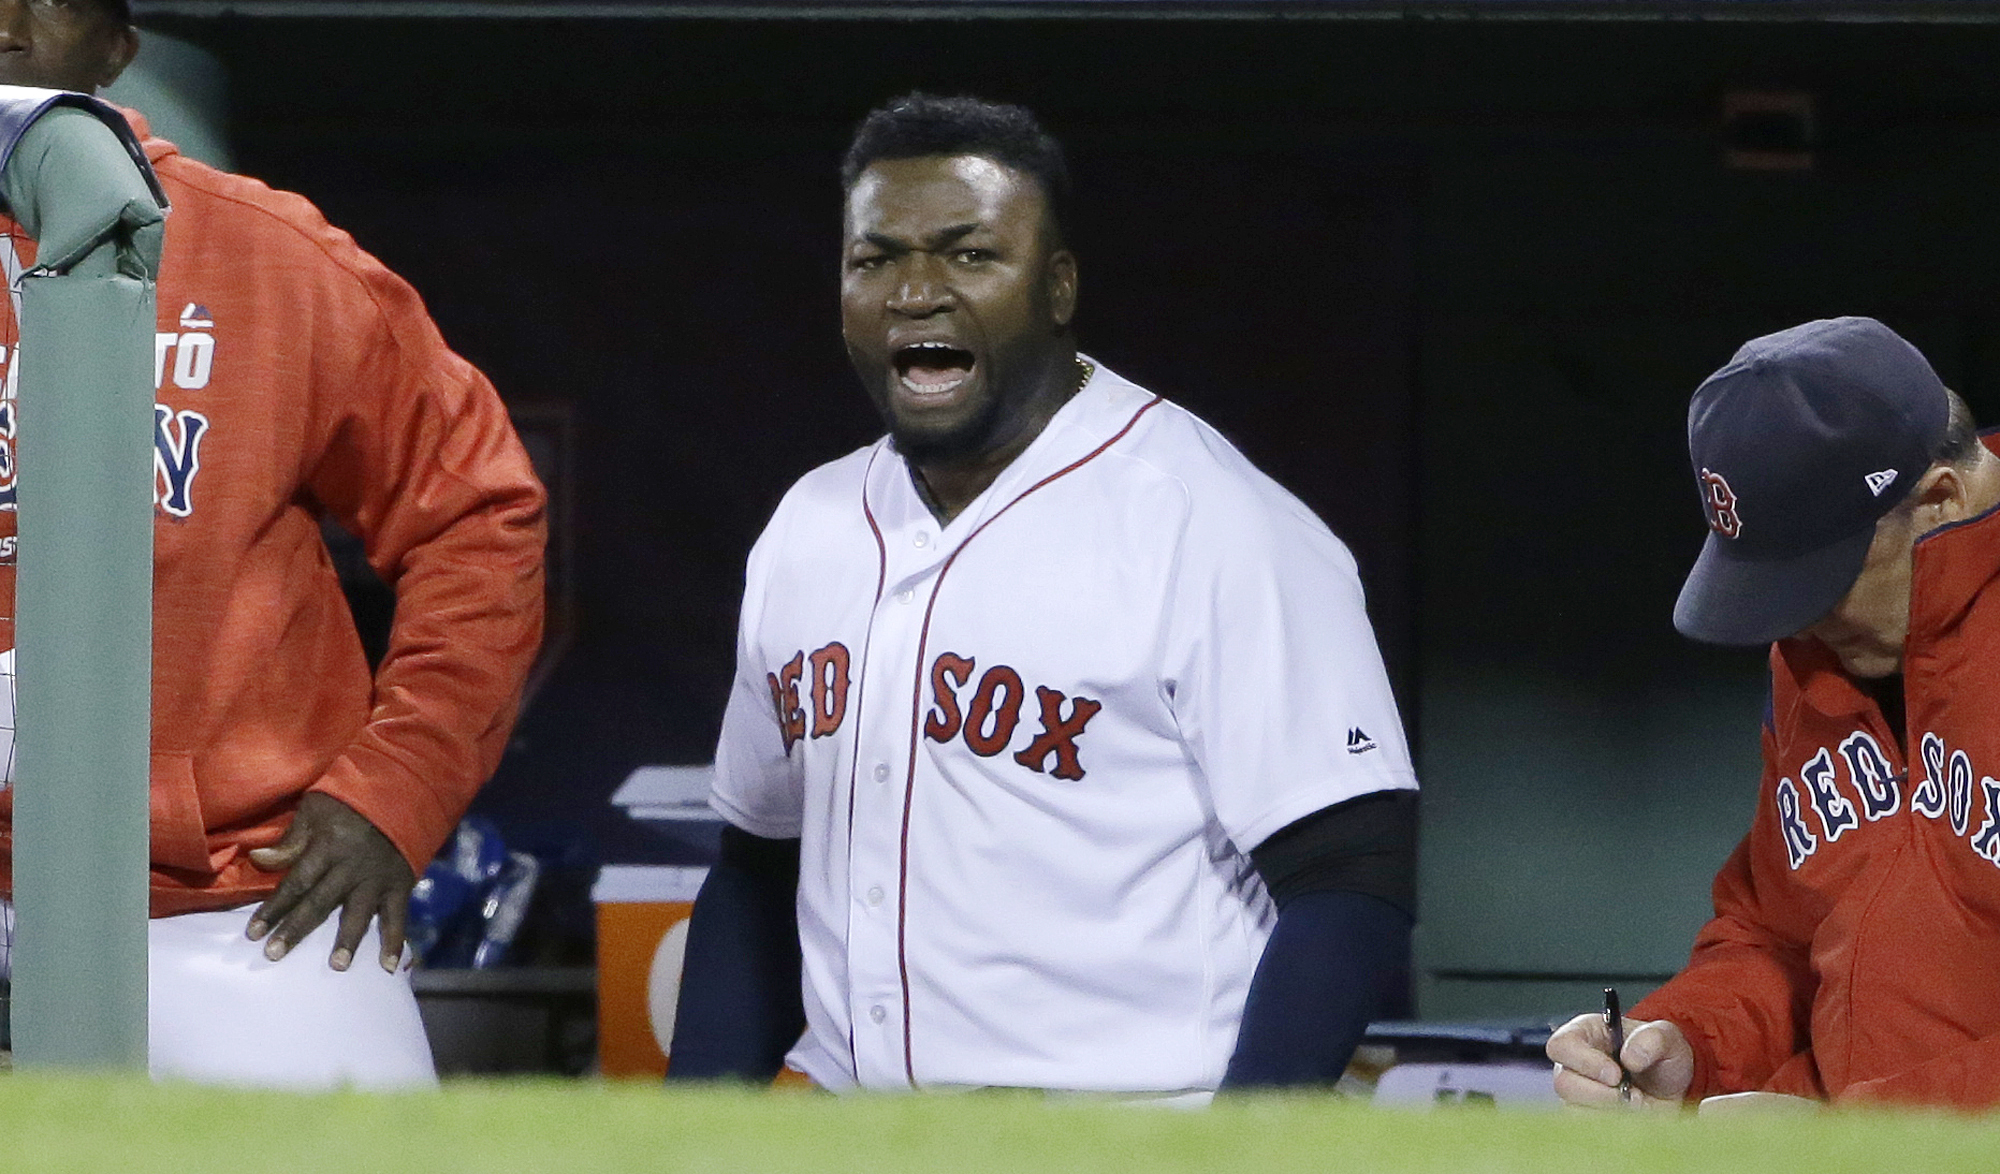 Boston Red Sox designated hitter David Ortiz encourages the crowd from the dugout during the eighth inning in Game 3 of baseball's American League Division Series against the Cleveland Indians, Monday, Oct. 10, 2016, in Boston. (AP Photo/Elise Amendola)